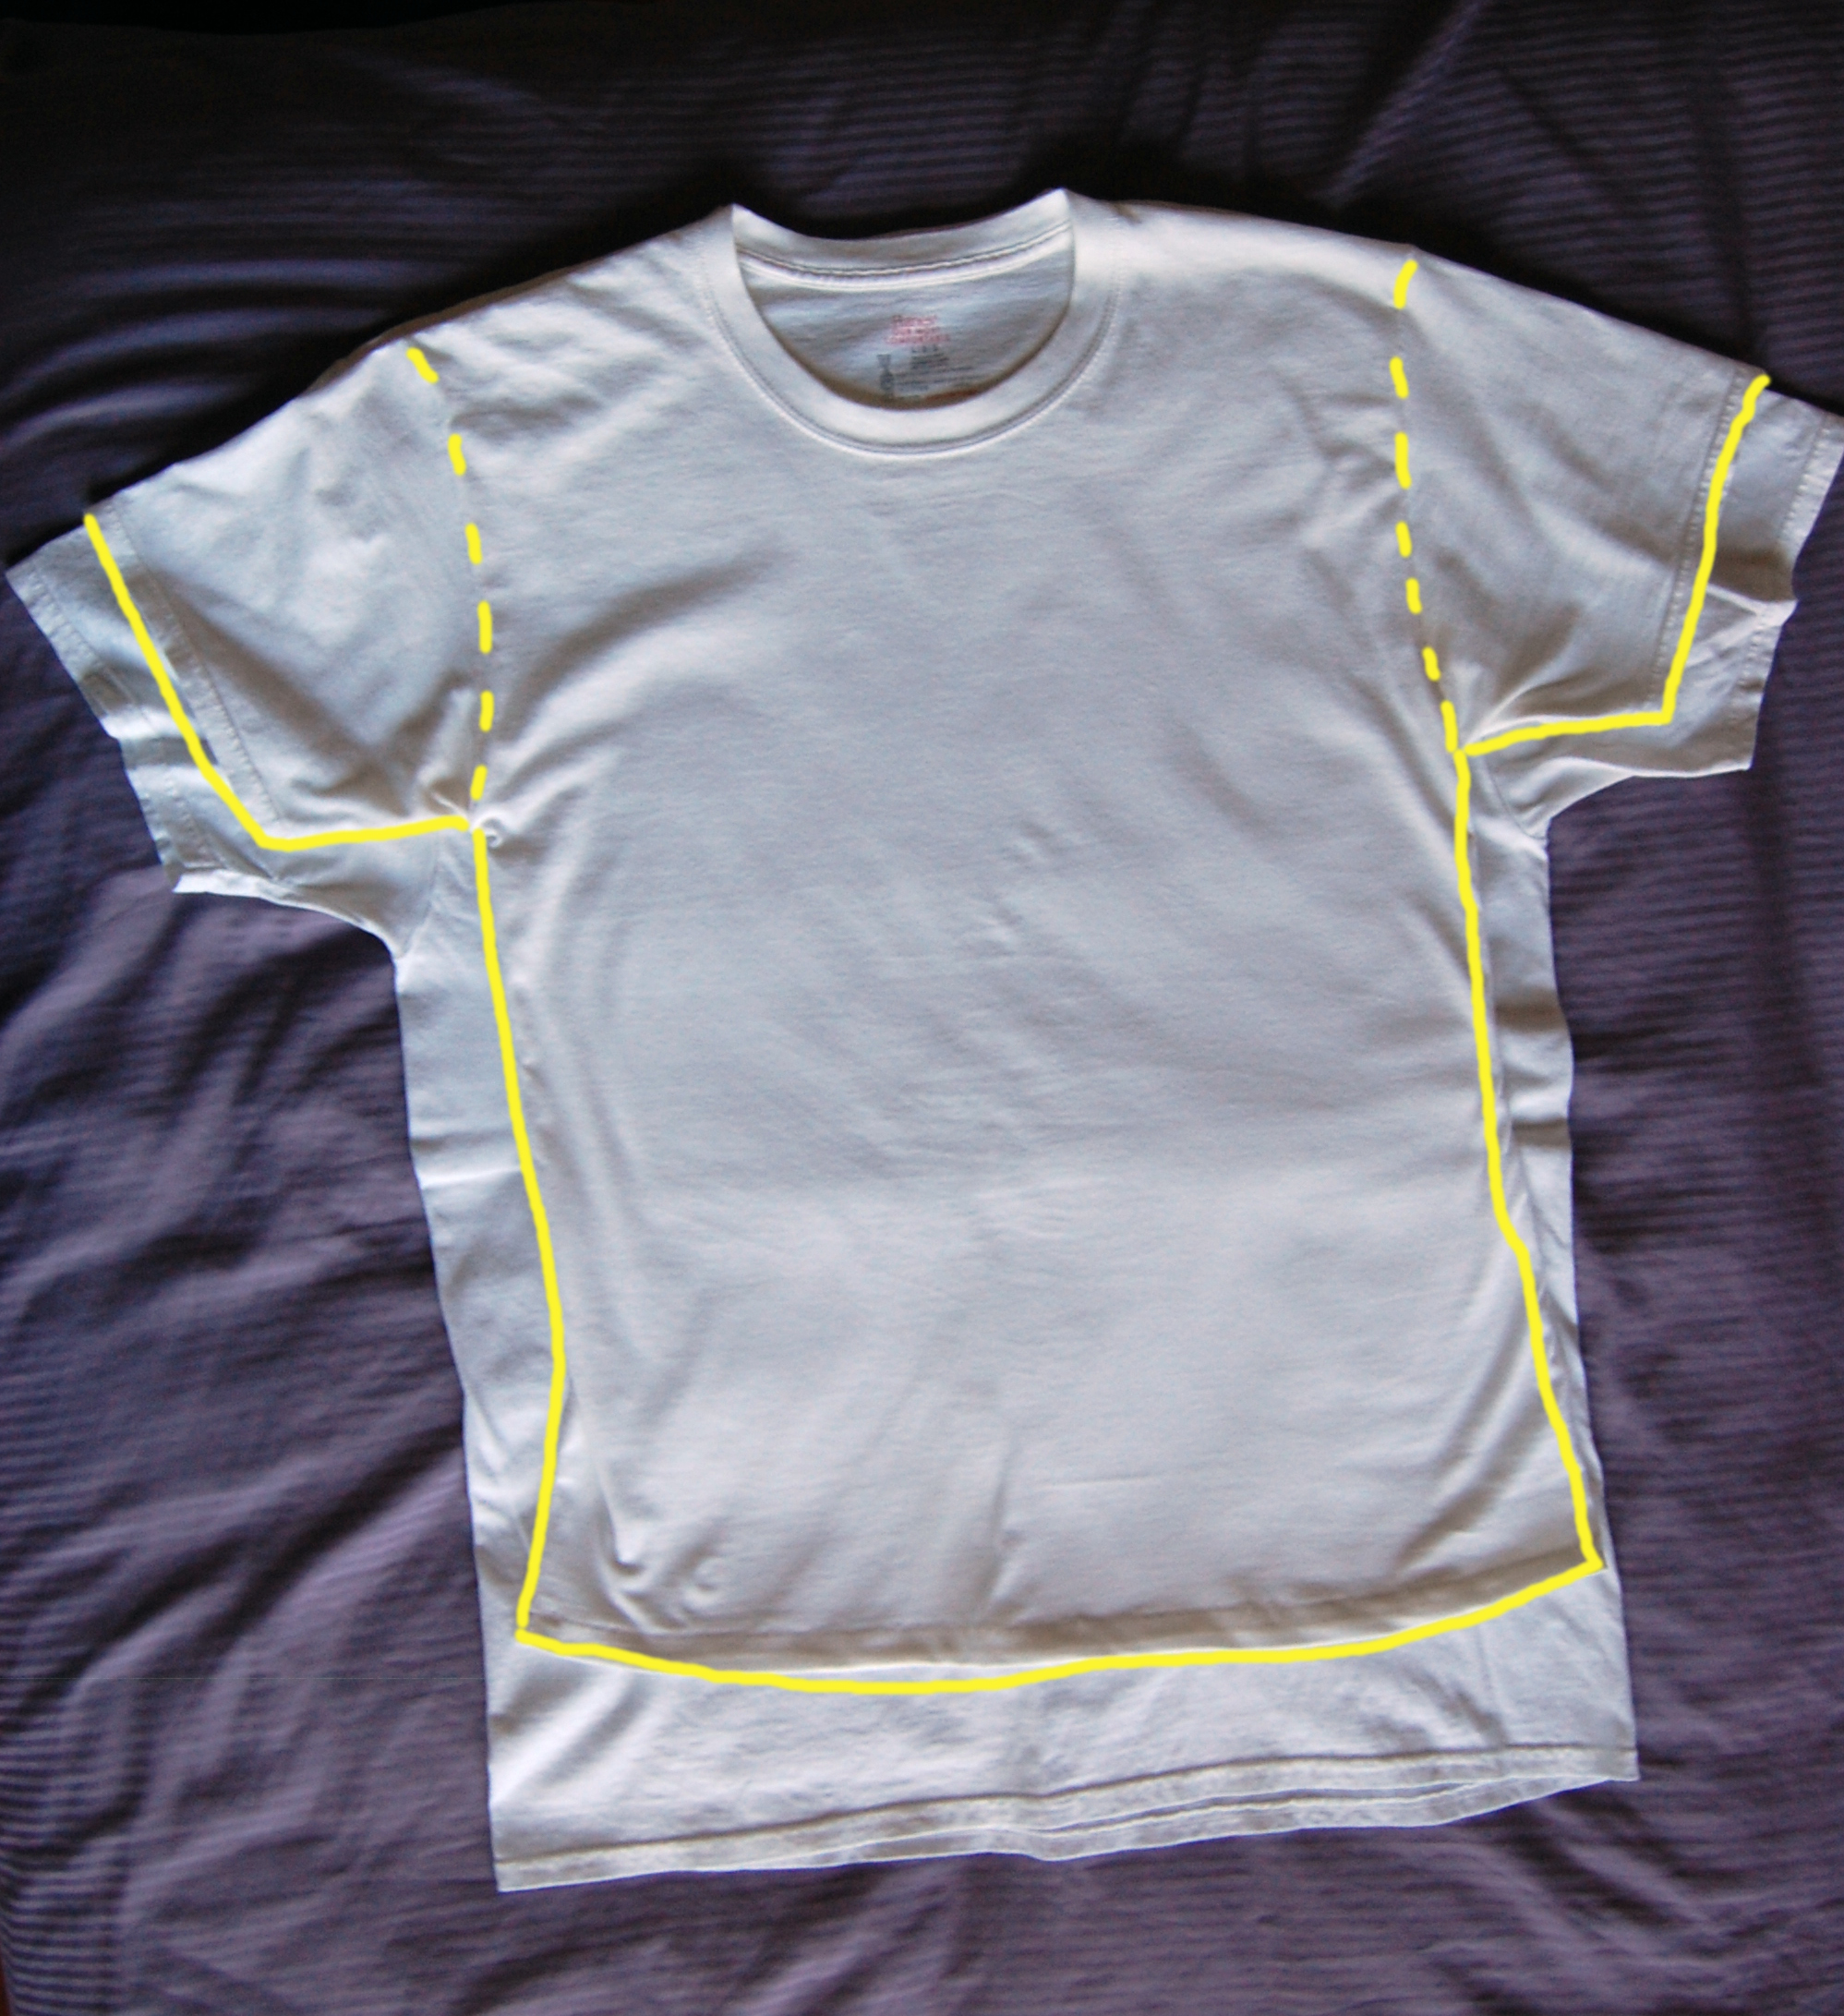 Tailored undershirt with changes highlighted